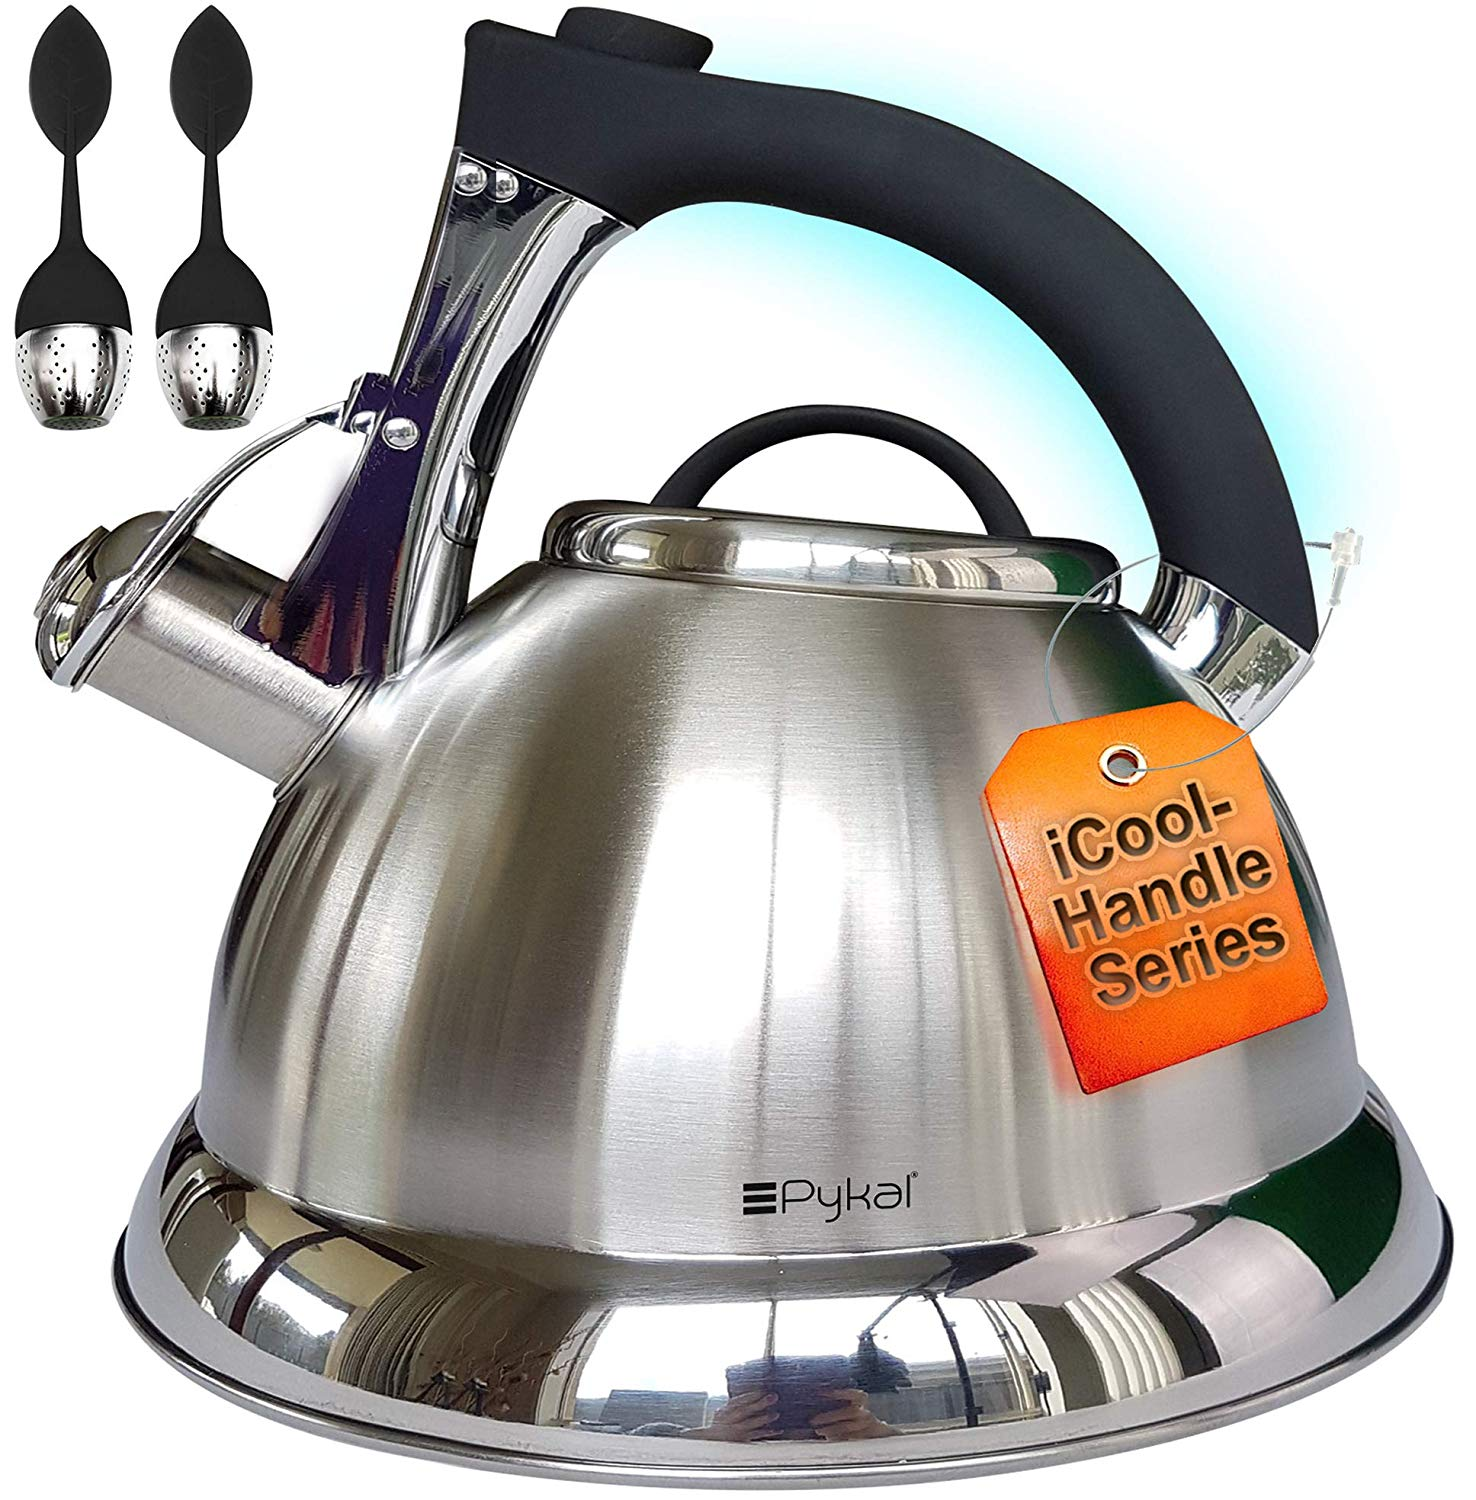 Pykal Whistling Tea Kettle